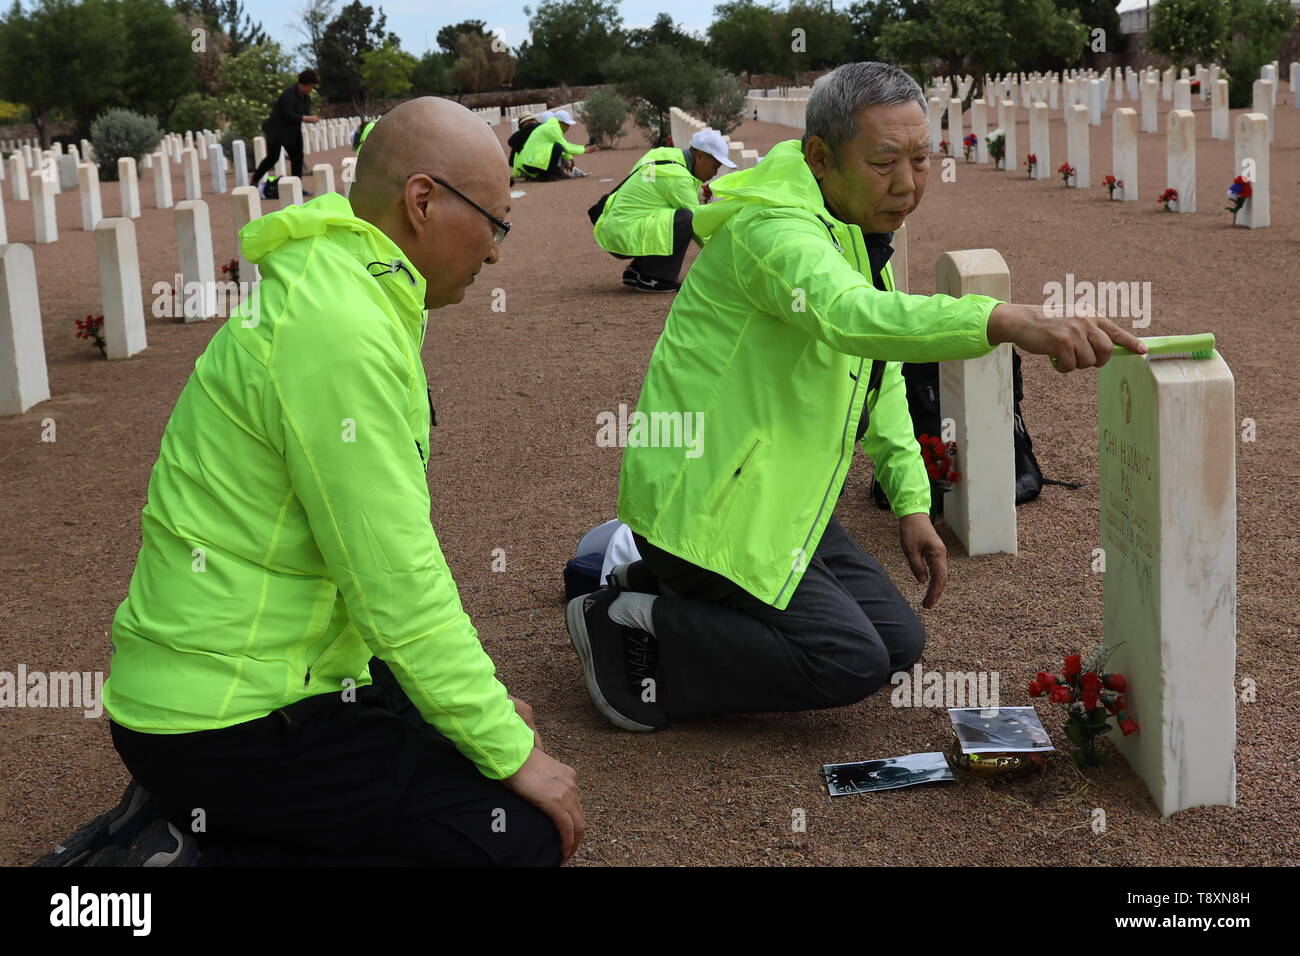 (190515) -- EL PASO (U.S.), May 15, 2019 (Xinhua) -- Family members of killed Chinese pilots pay homage to their loved ones at the Fort Bliss National Cemetery in El Paso, Texas, the United States, on May 12, 2019. More than seven decades ago, groups of young Chinese came to the United States for military flight trainings against Japanese invasion. Unfortunately, 52 of them were killed during pilot trainings. Now, for the first time in more than half a century, relatives of those killed Chinese cadets made an arduous journey to El Paso, U.S. state of Texas, for belated reunions with their dece - Stock Image